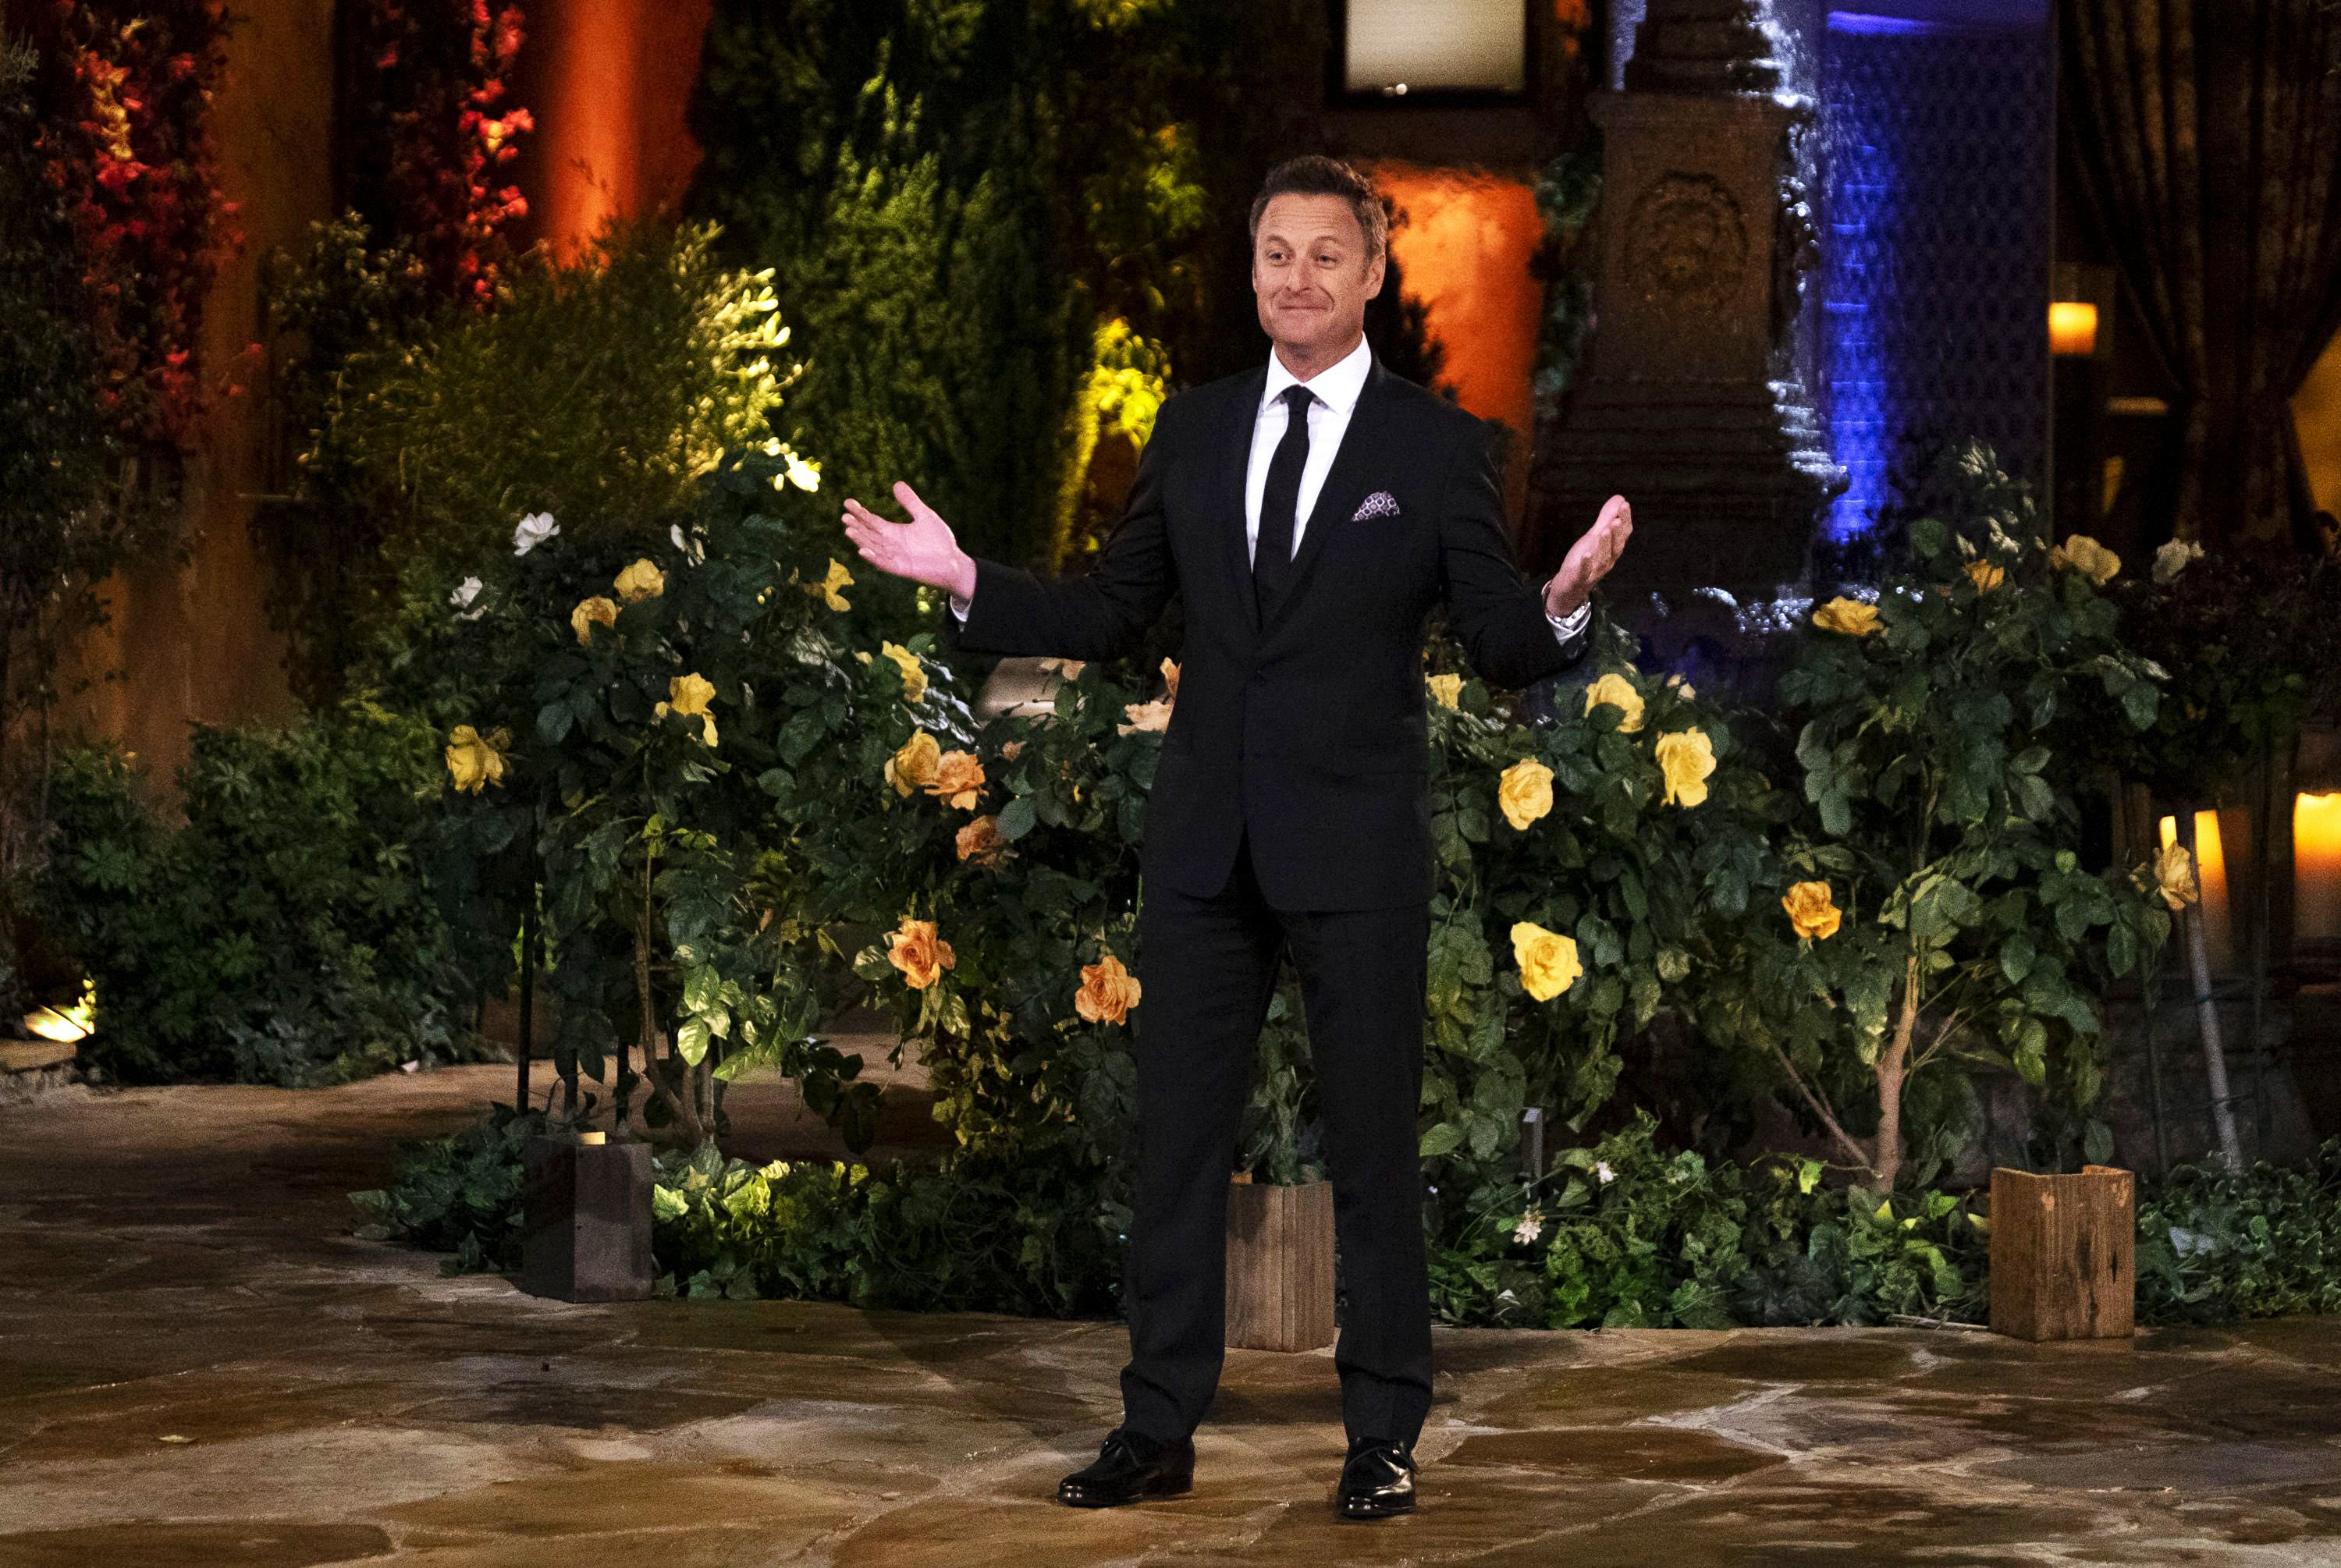 Who is ben from the bachelor dating now 2020